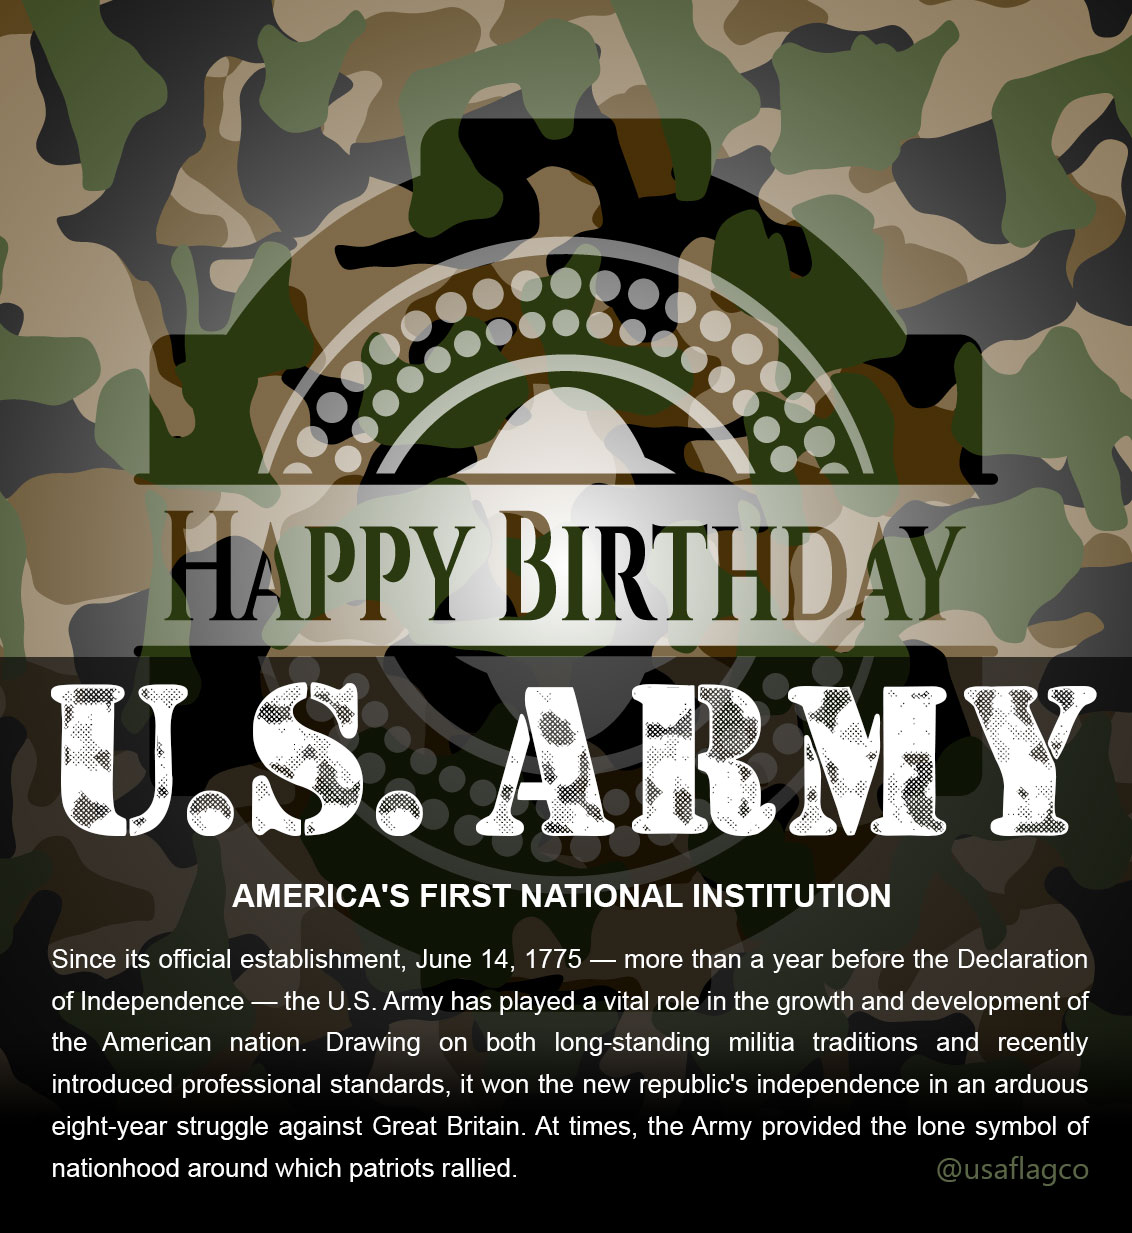 Happy Birthday United States ARMY - Since its official establishment, June 14, 1775 — more than a year before the Declaration of Independence — the U.S. Army has played a vital role in the growth and development of the American nation. Drawing on both long-standing militia traditions and recently introduced professional standards, it won the new republic's independence in an arduous eight-year struggle against Great Britain.